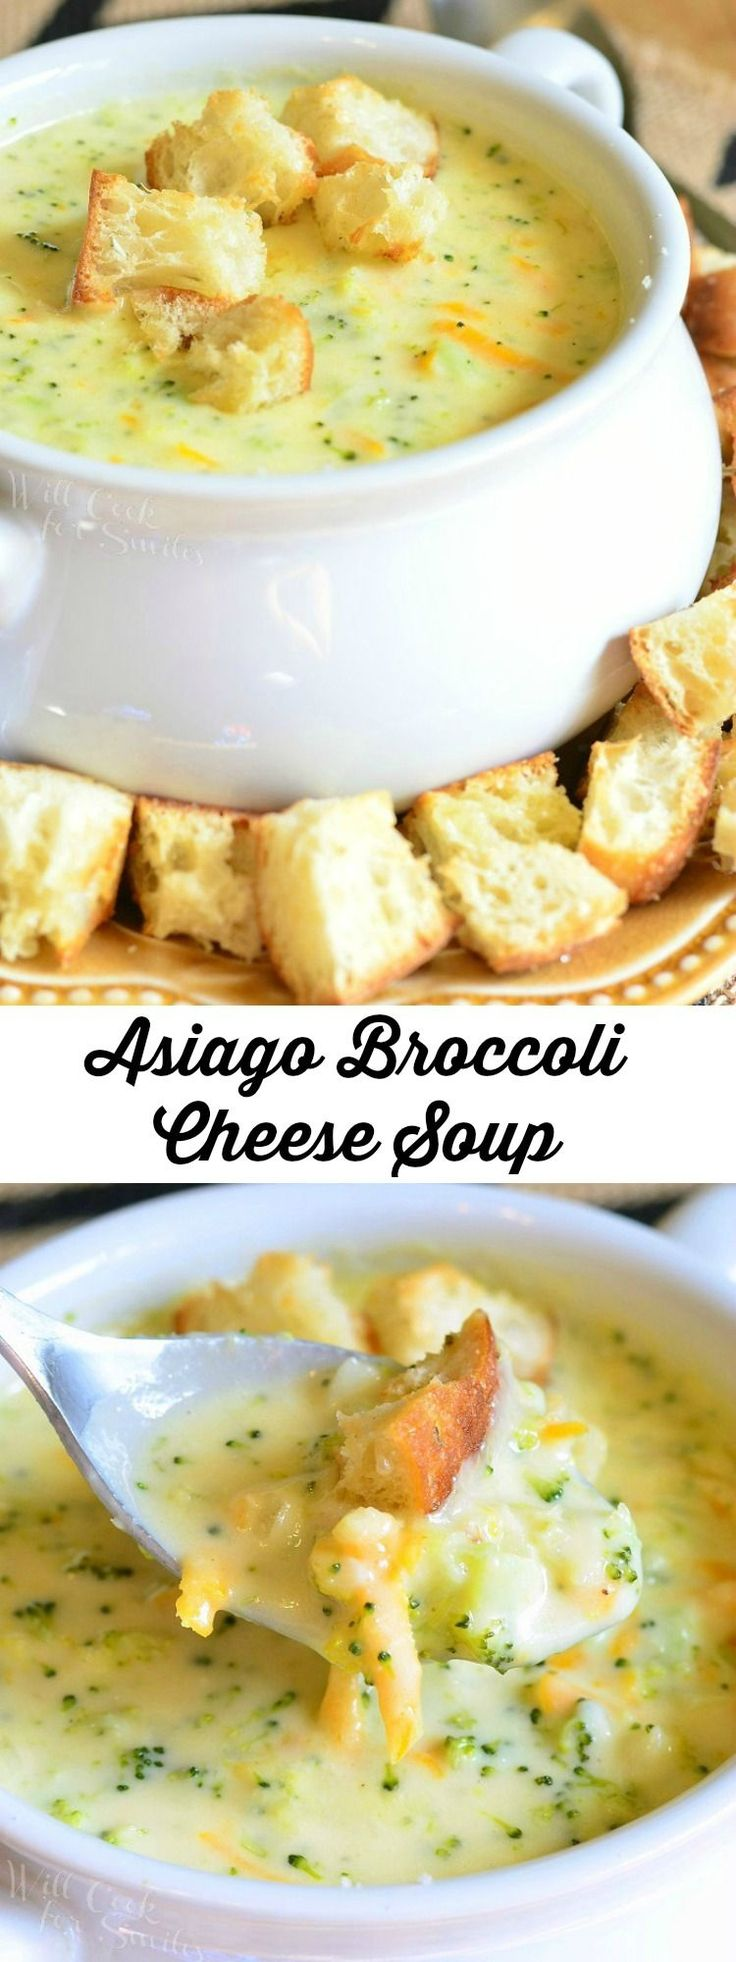 //Asiago Broccoli Cheese Soup | from willcookforsmiles.com #comfortfood #soup #cheese